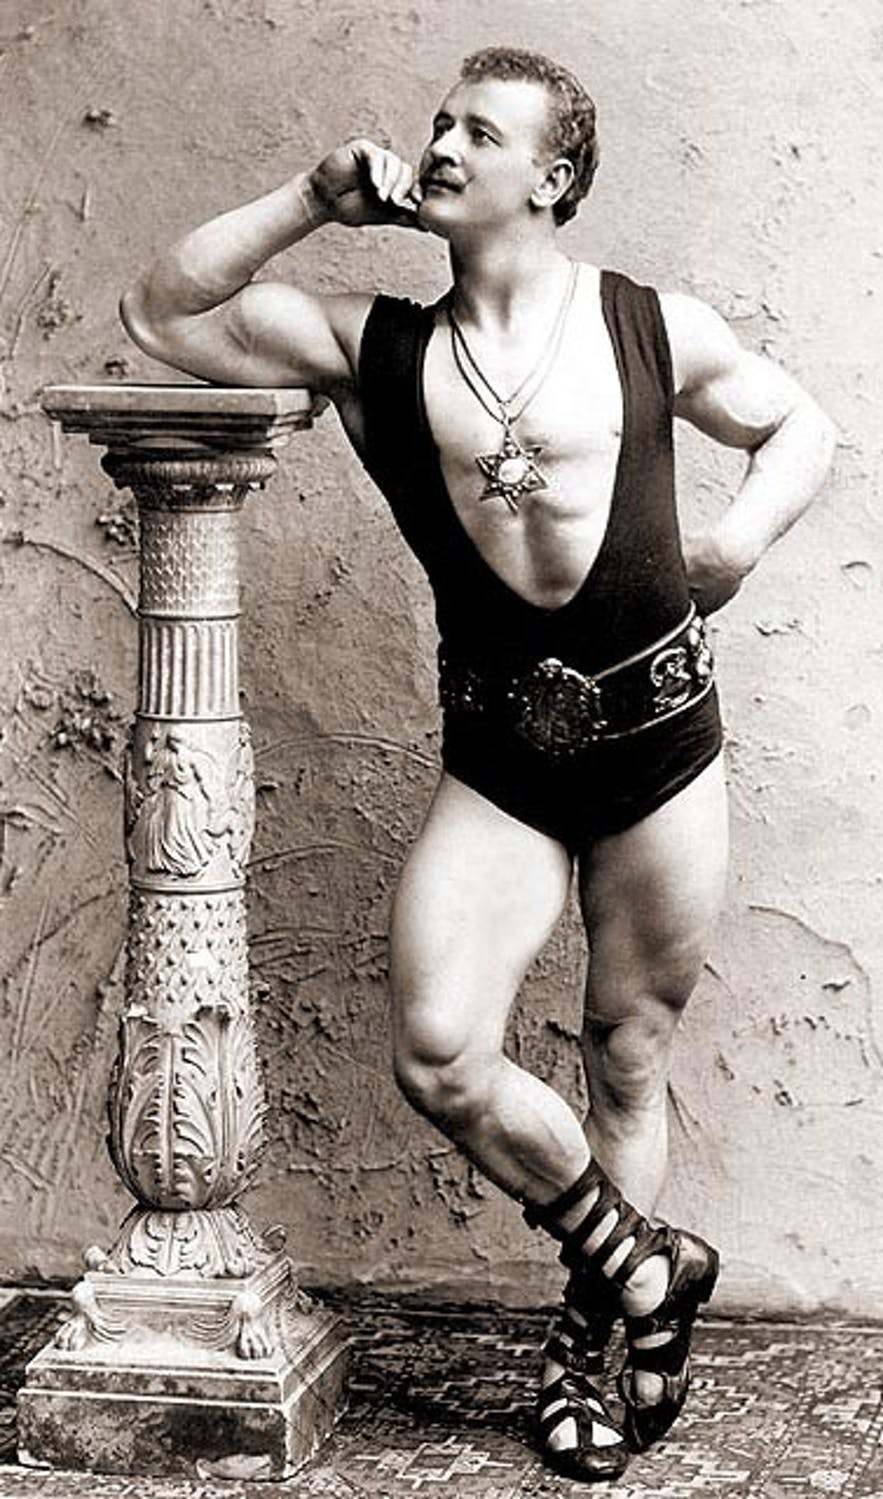 The father of bodybuilding, Eugen Sandow, is a long stretch from modern strongmen.